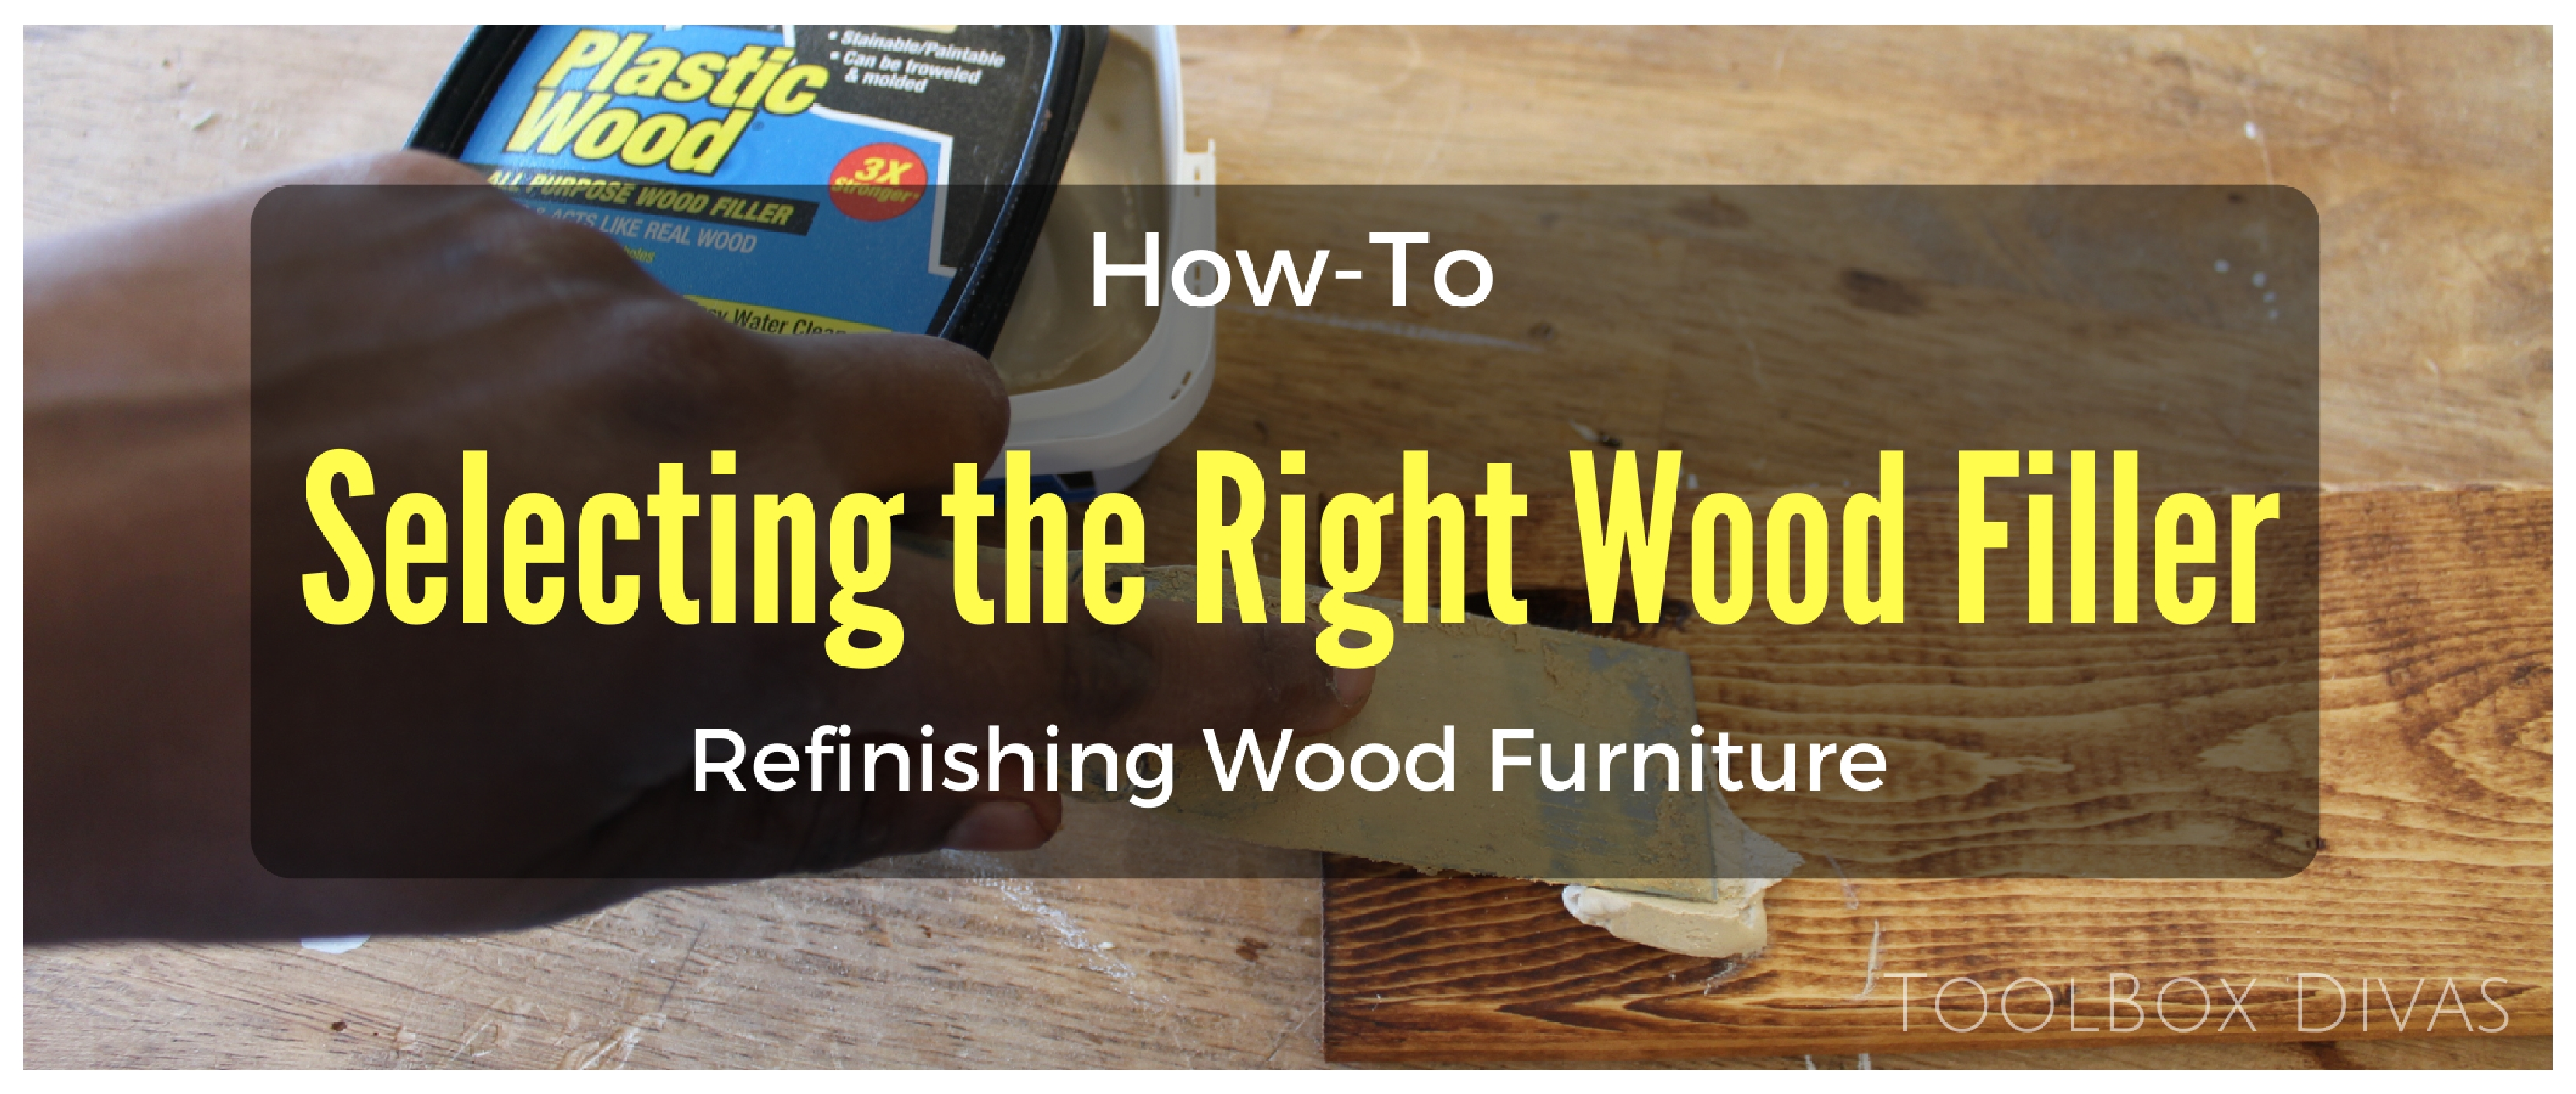 Refinishing Furniture Selecting The Right Wood Filler